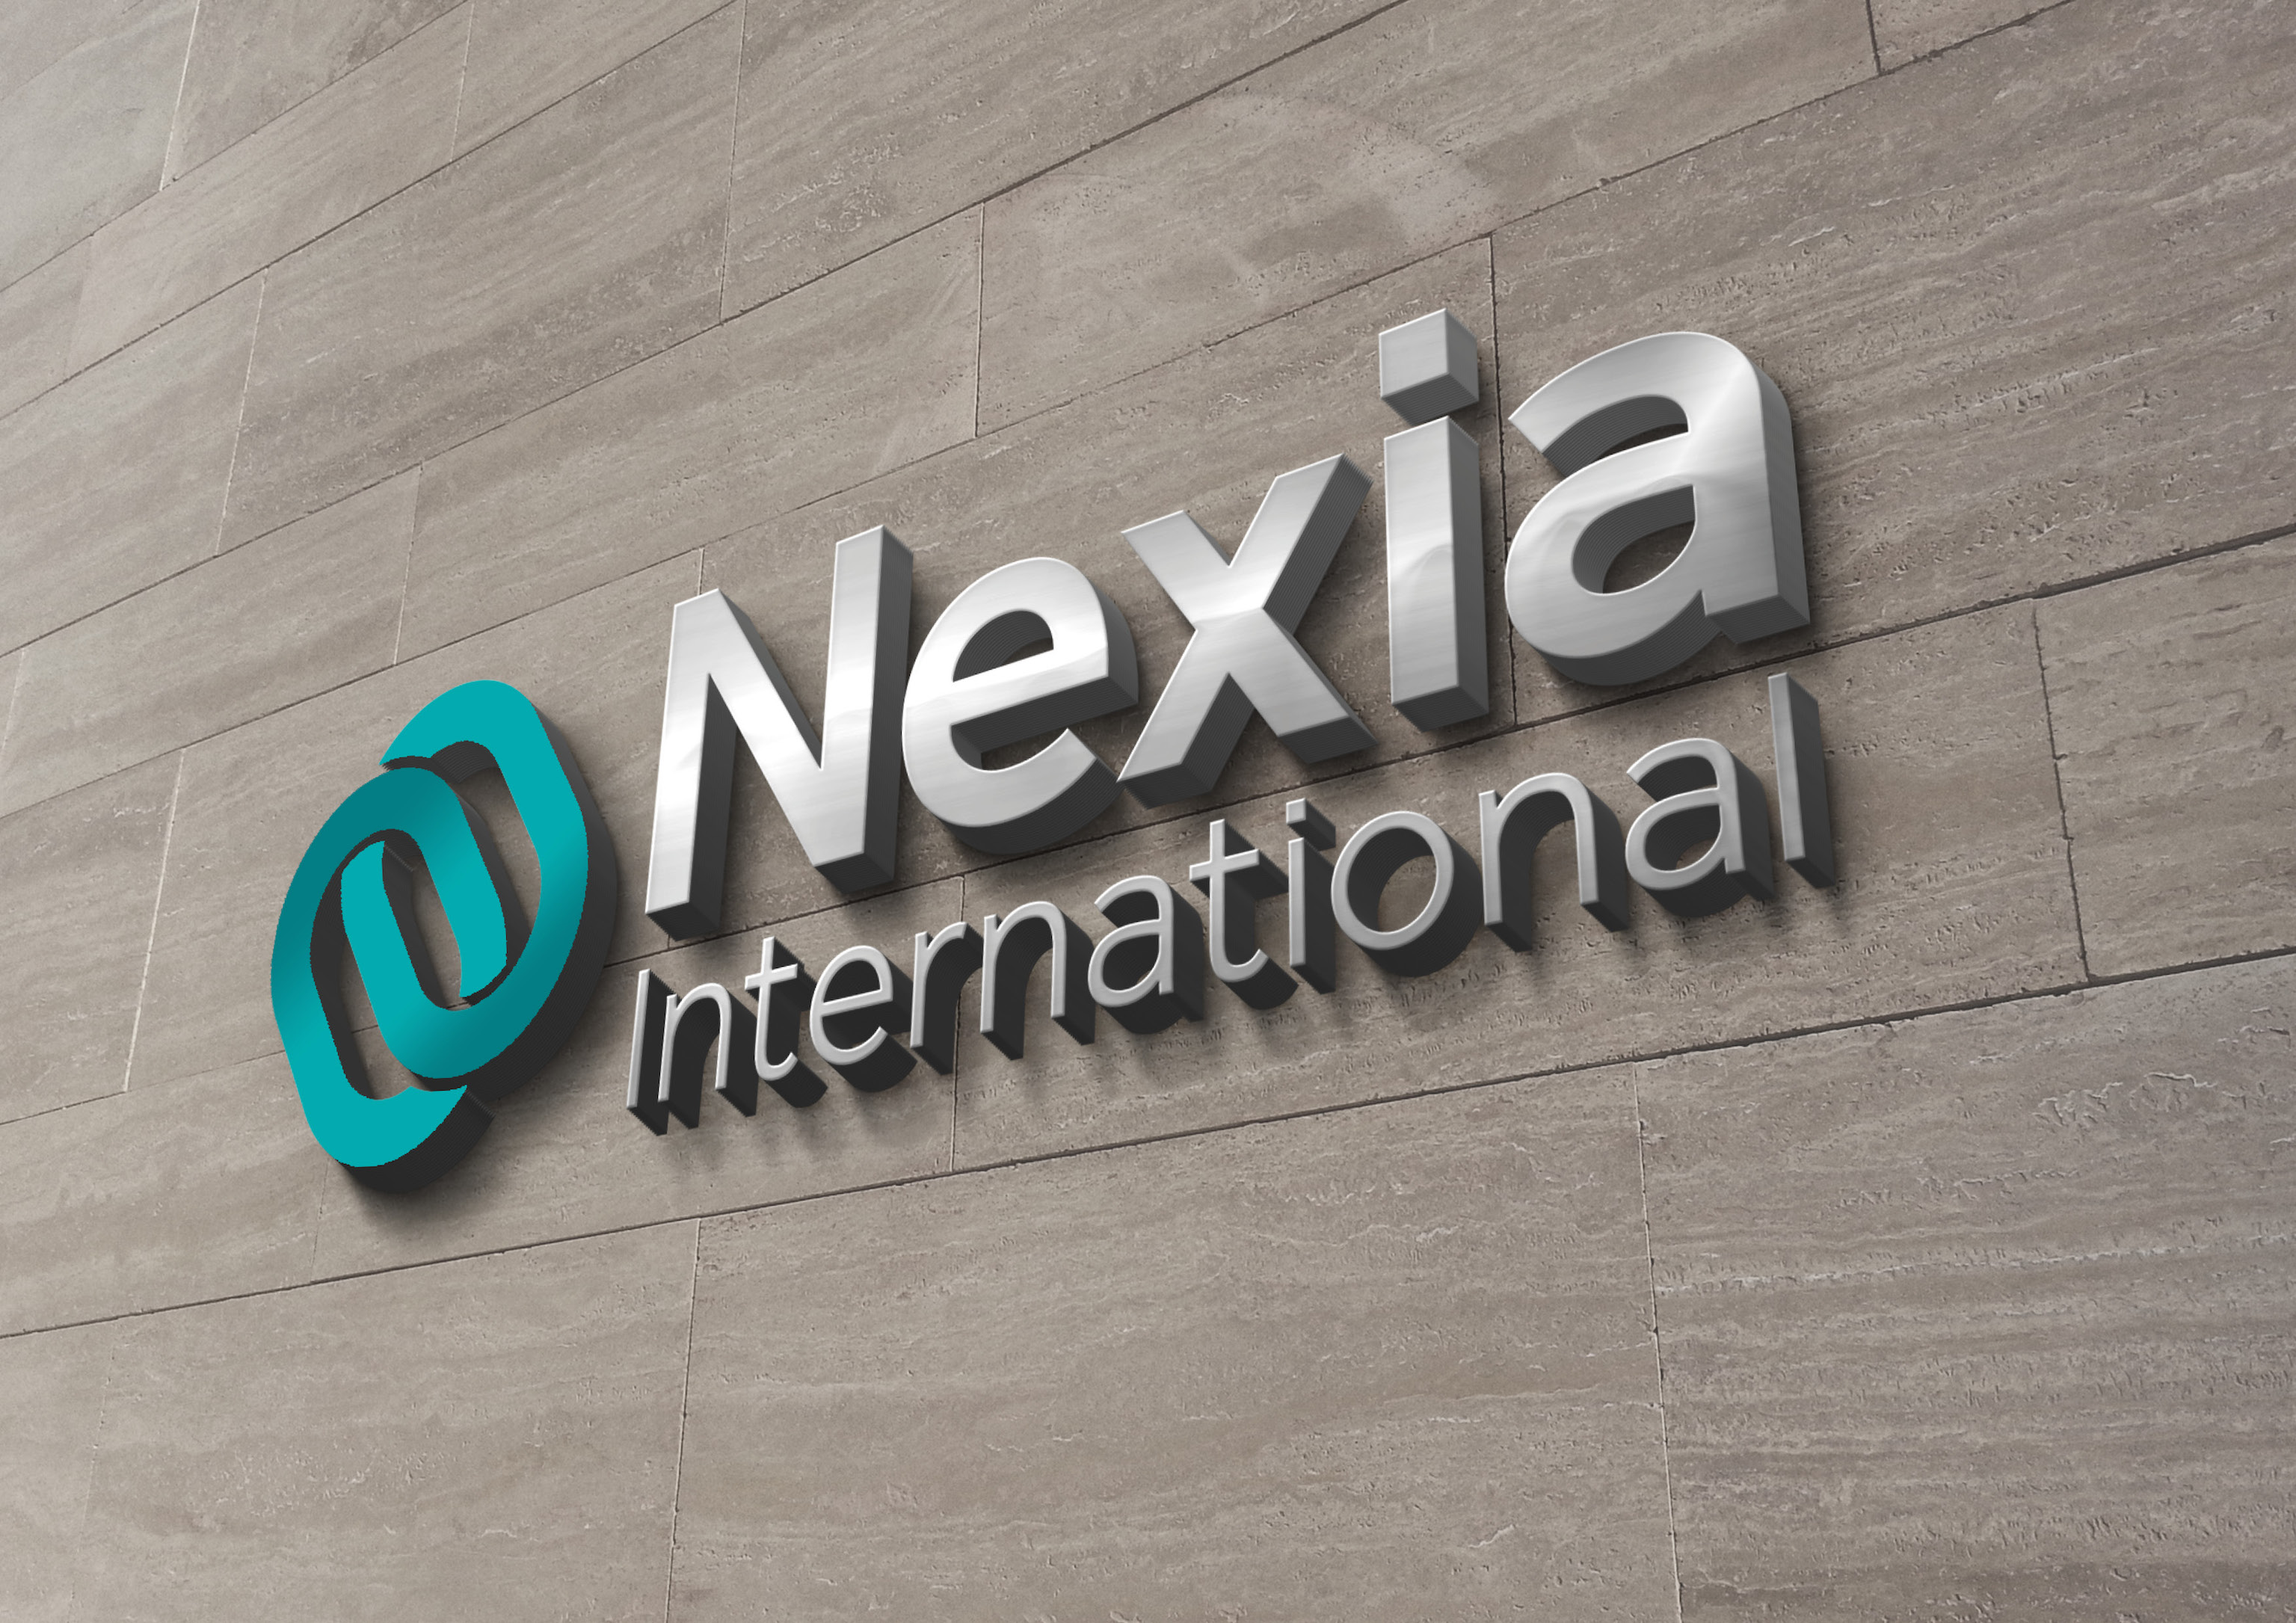 Nexia International announces financial results showing a 13% rise in global revenue